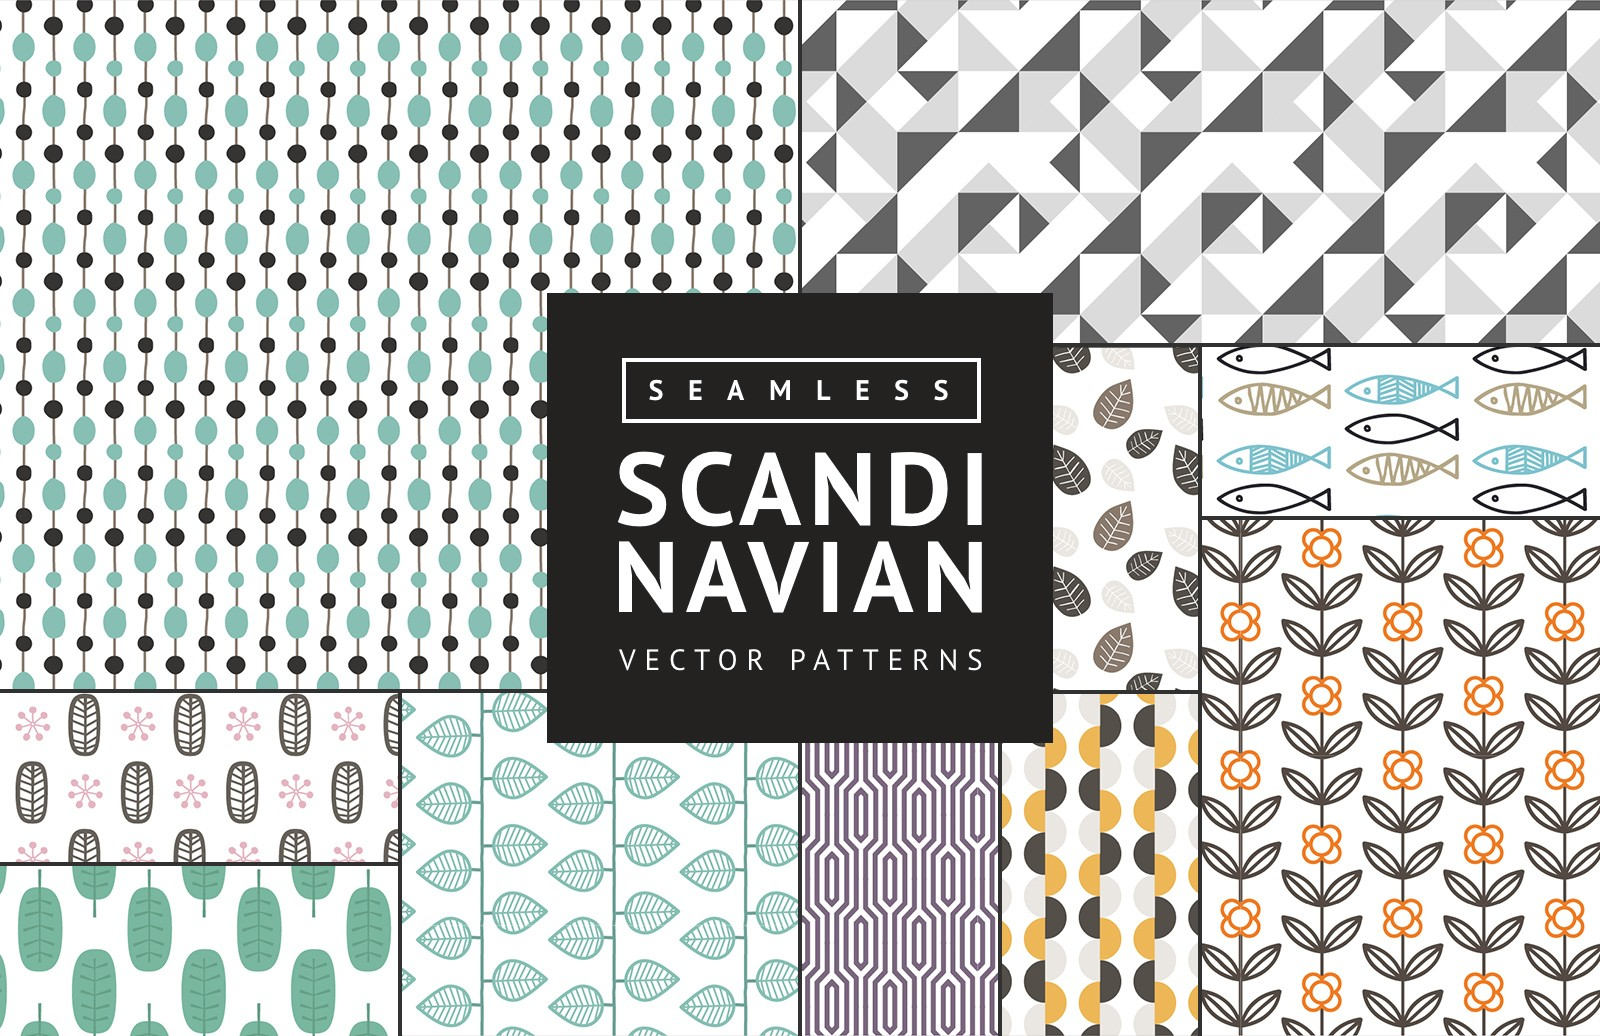 Seamless Scandinavian Vector Patterns